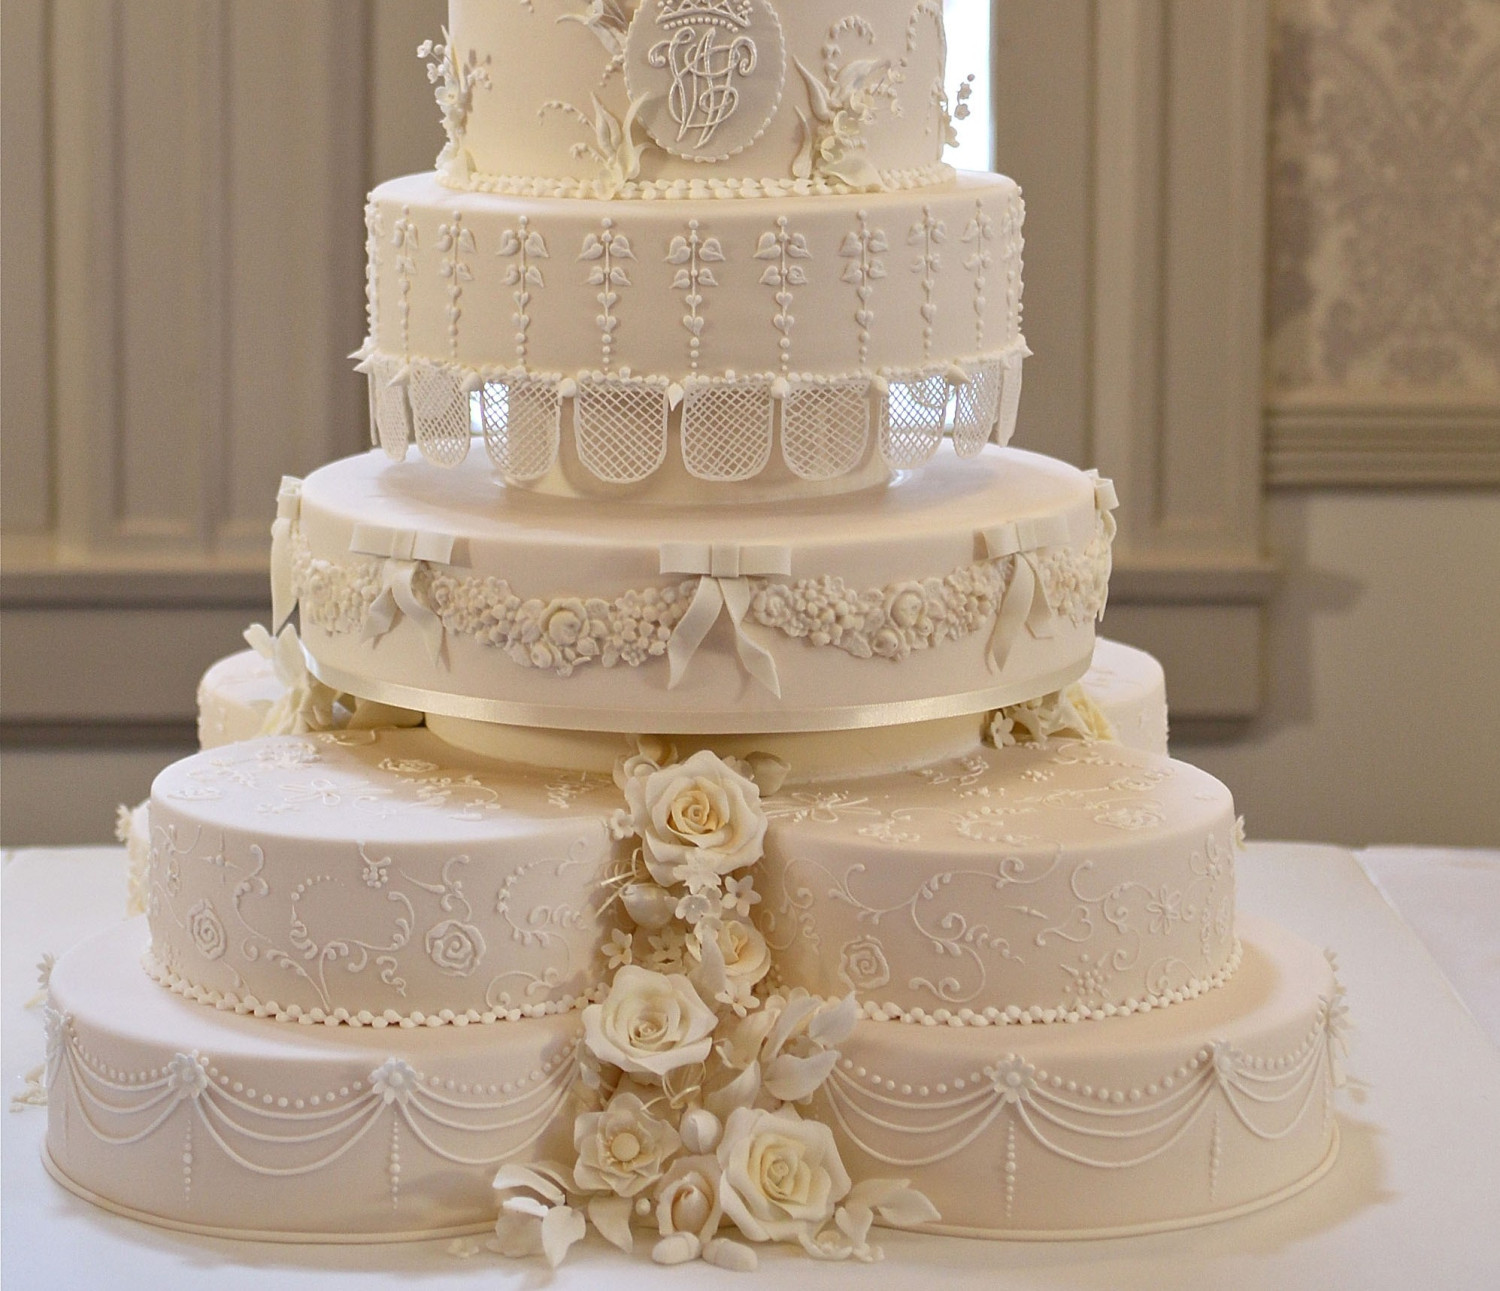 Best Wedding Cake Recipes  Best Places For Wedding Cakes In Tampa Bay – CBS Tampa